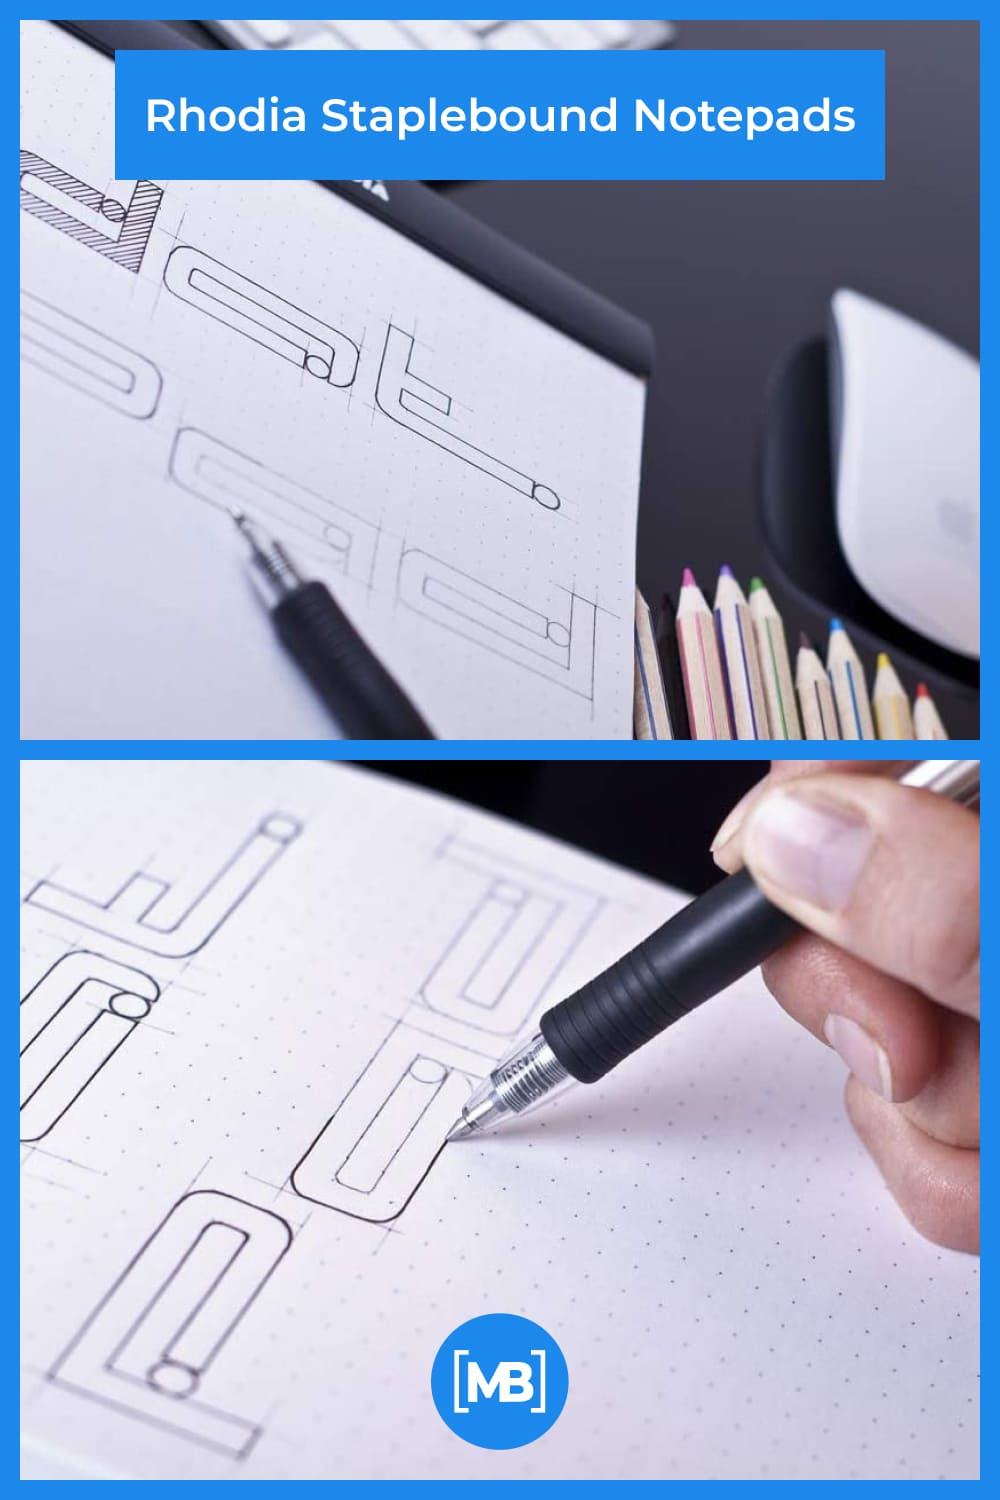 hodia are a premium notepad, notebook and stationery brand.